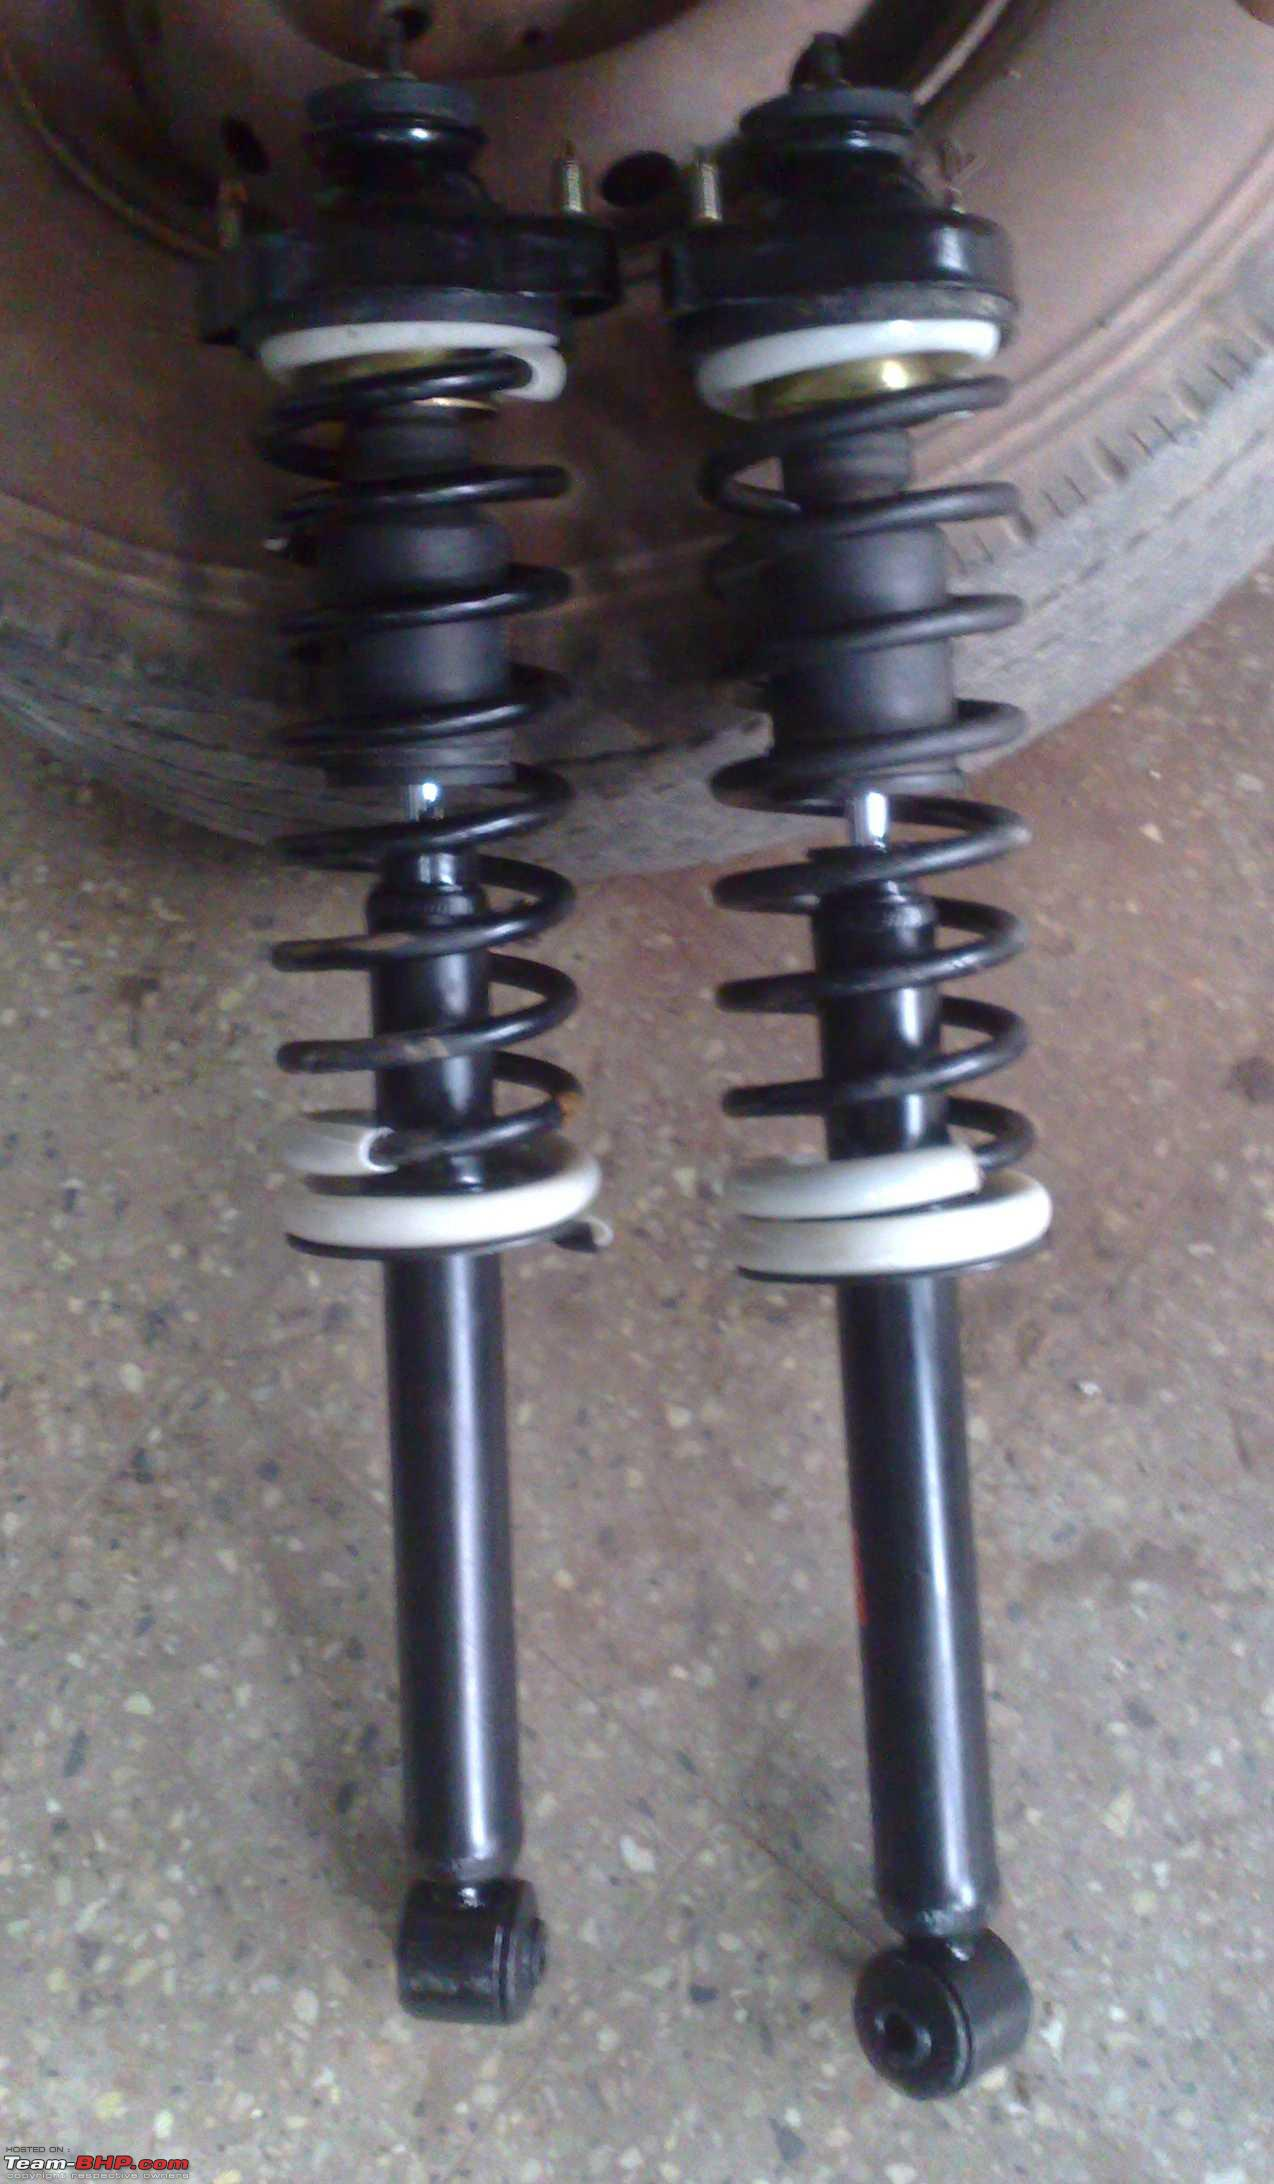 Lancer Rear Suspension work @90k - Team-BHP